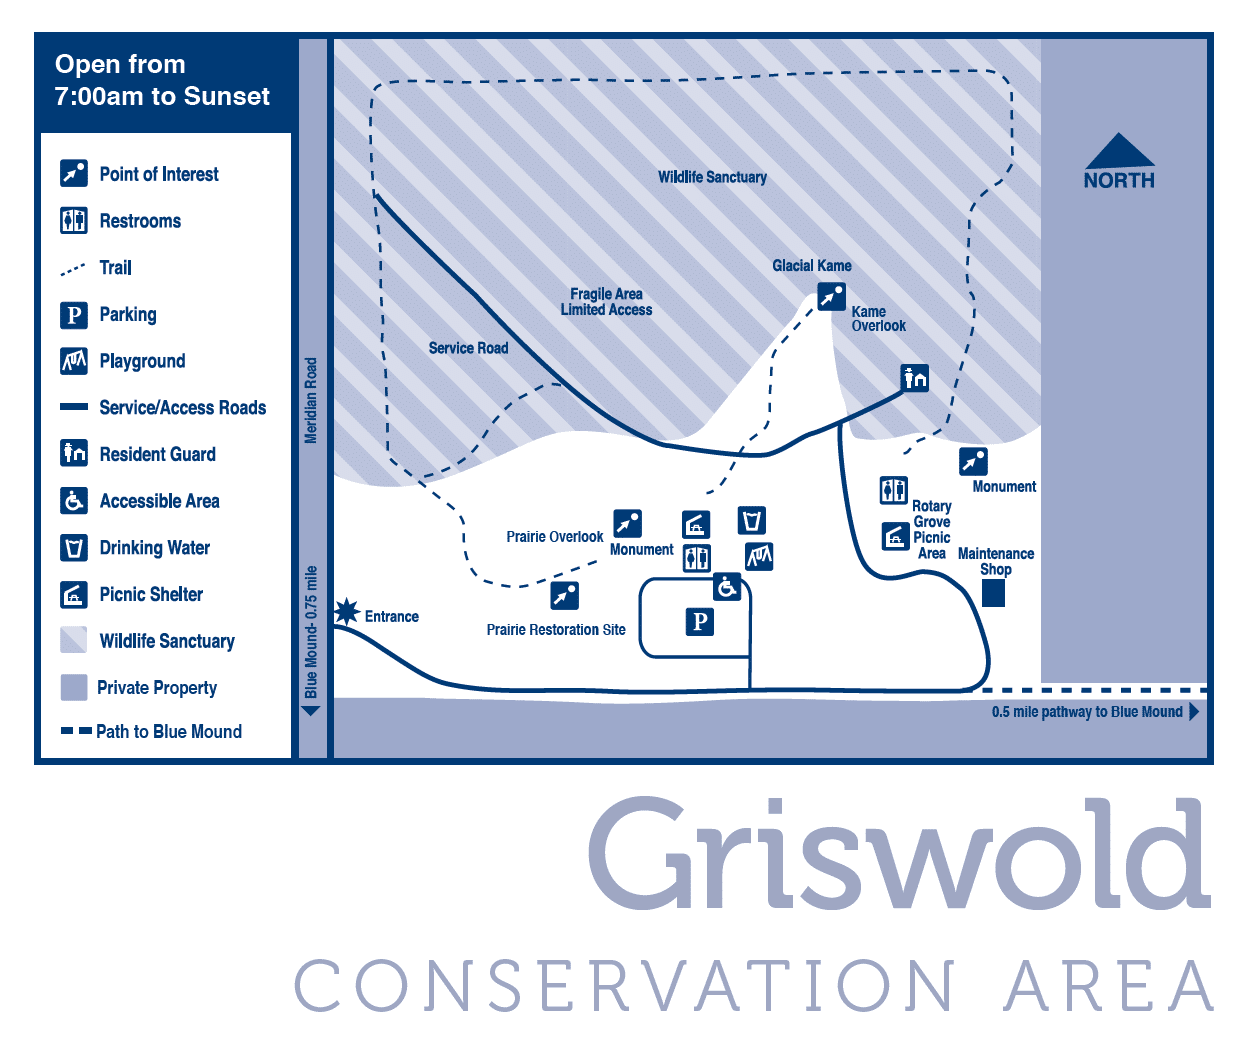 Griswold Conservation Area Map